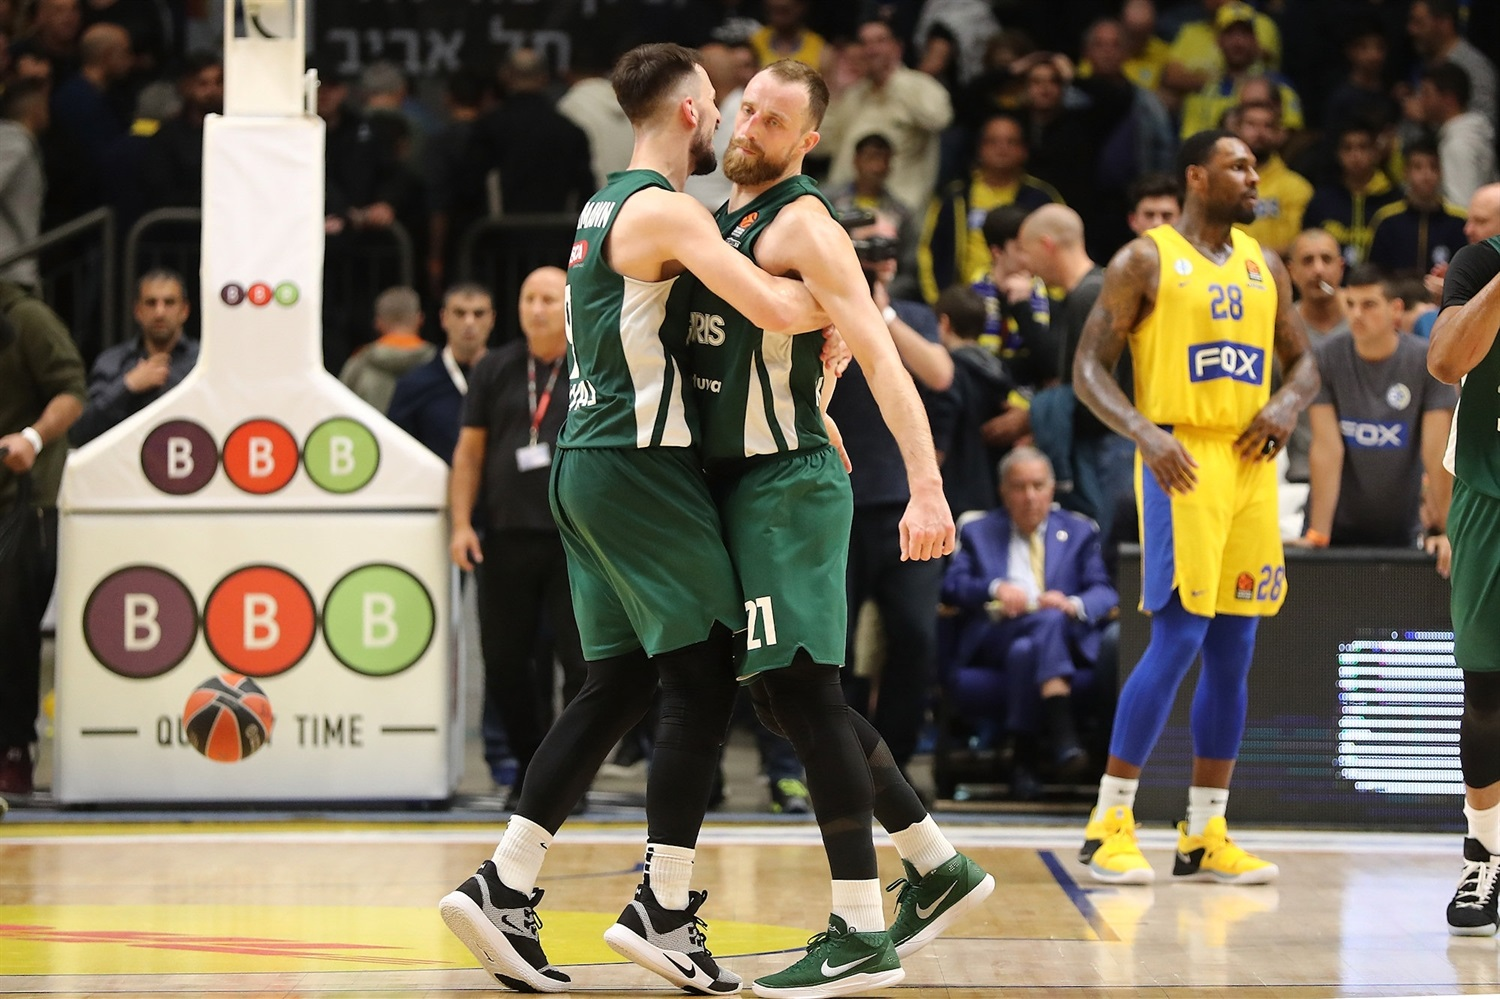 Leo Westermann and Arturas Milaknis celebrates - Zalgiris Kaunas - EB18